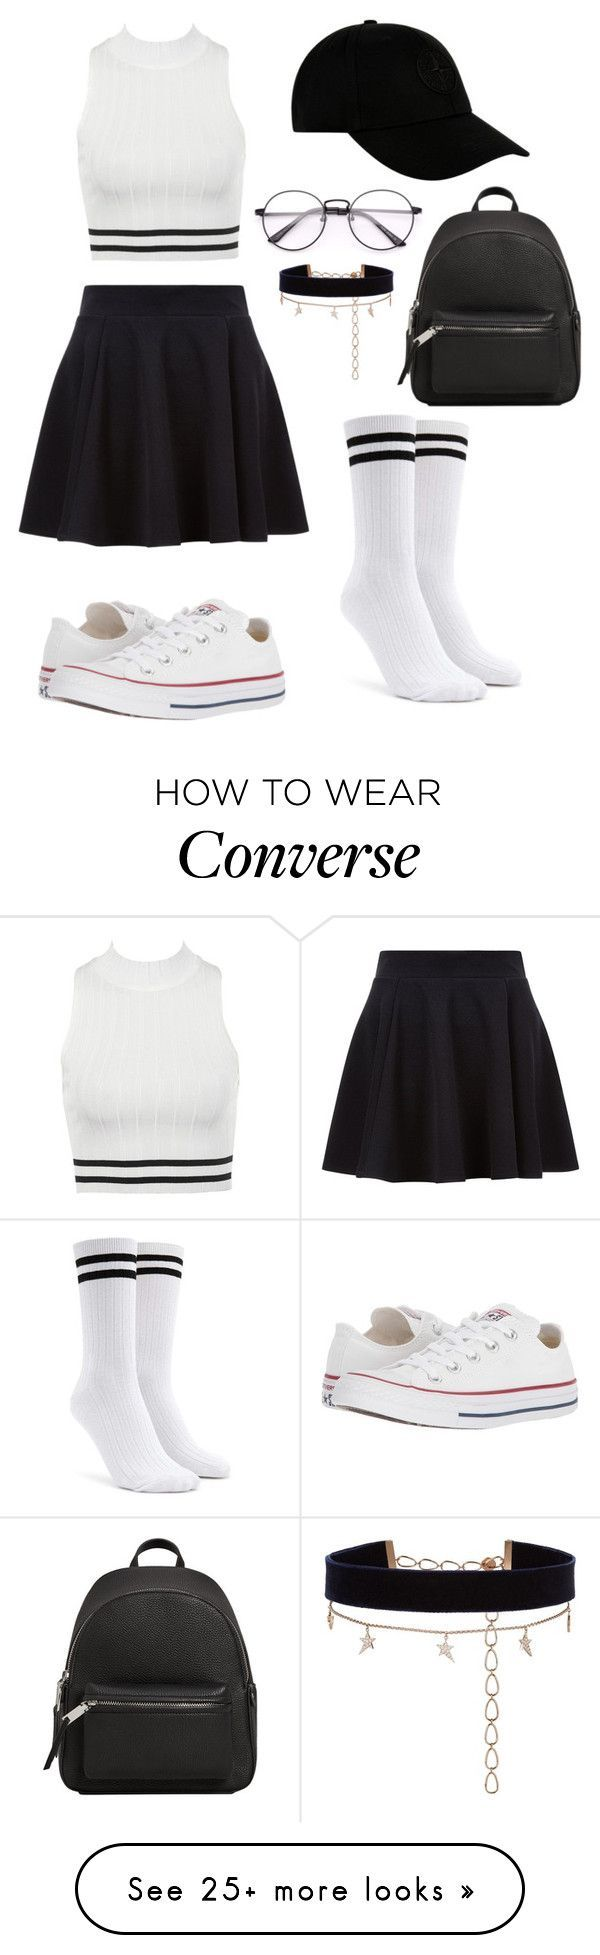 """""""SPORTY ELEGANT OUTFIT"""" by greta1101 on Polyvore featuring Forever 21, STONE ISLAND, Converse, MANGO and Diane Kordas #polyvoreoutfits"""